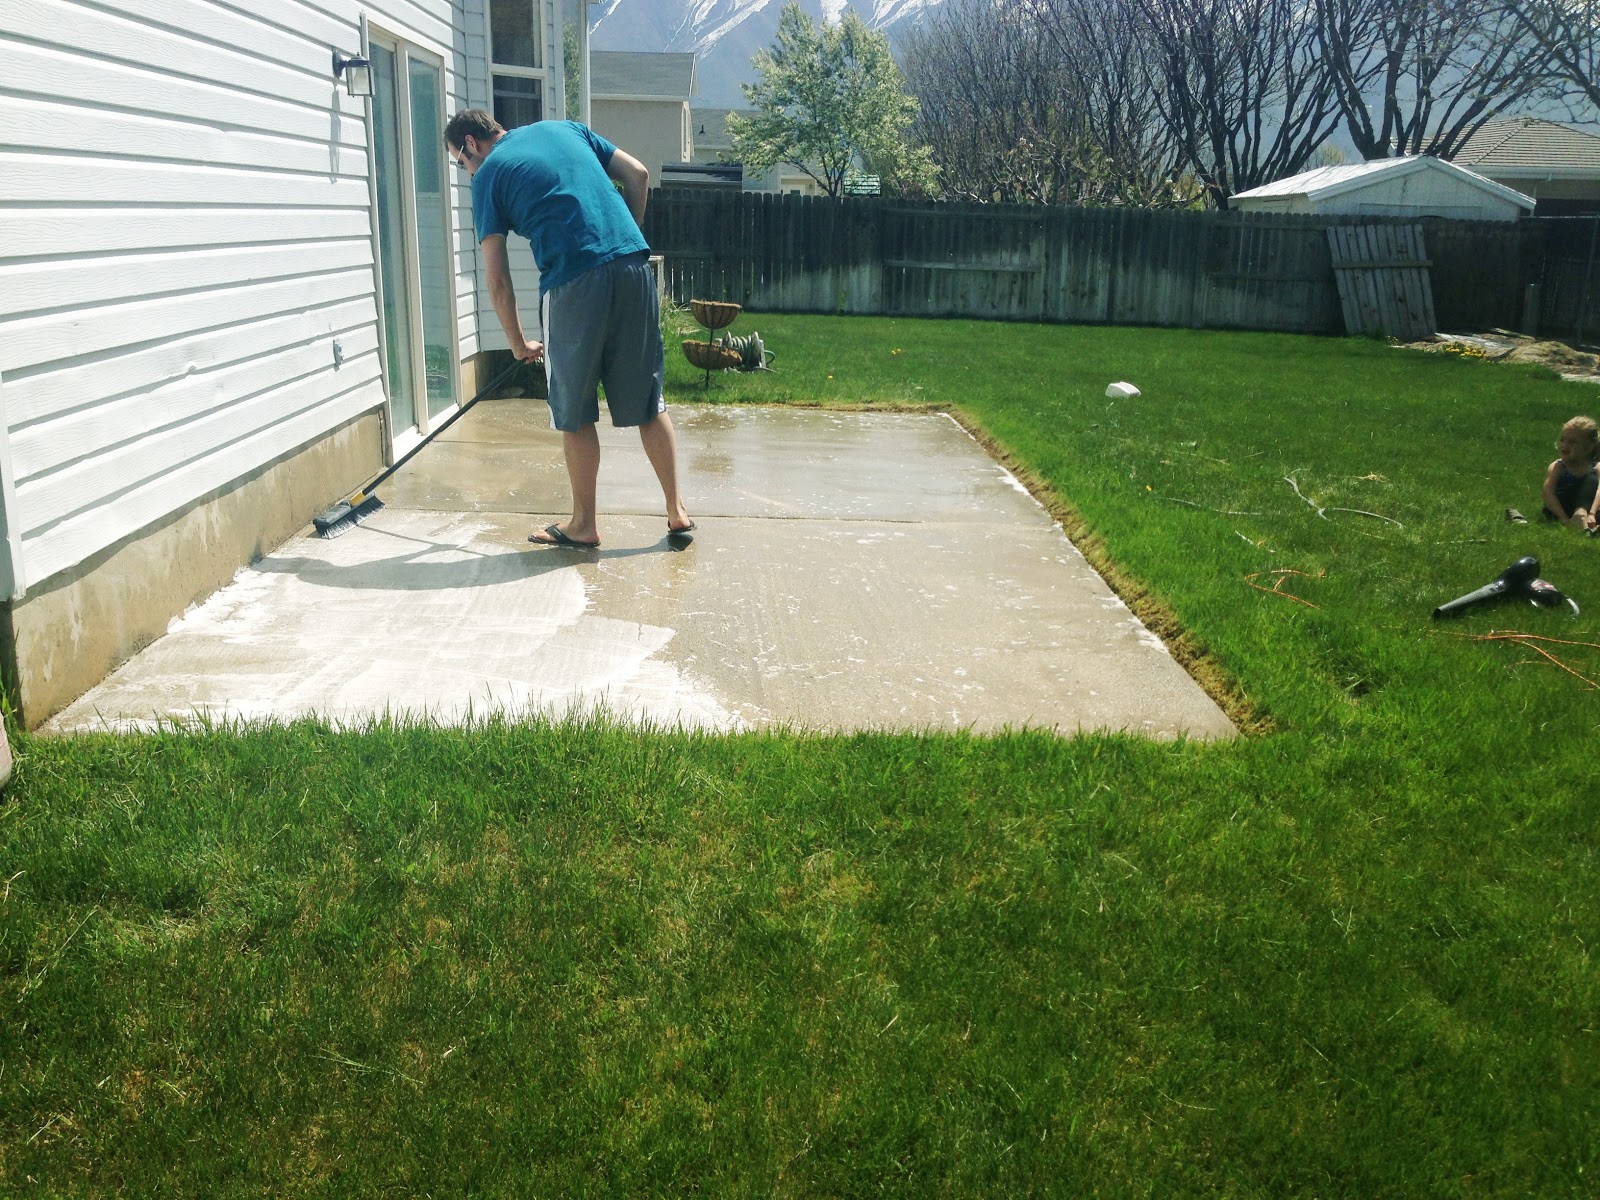 How To Stain A Concrete Patio - Chris Loves Julia